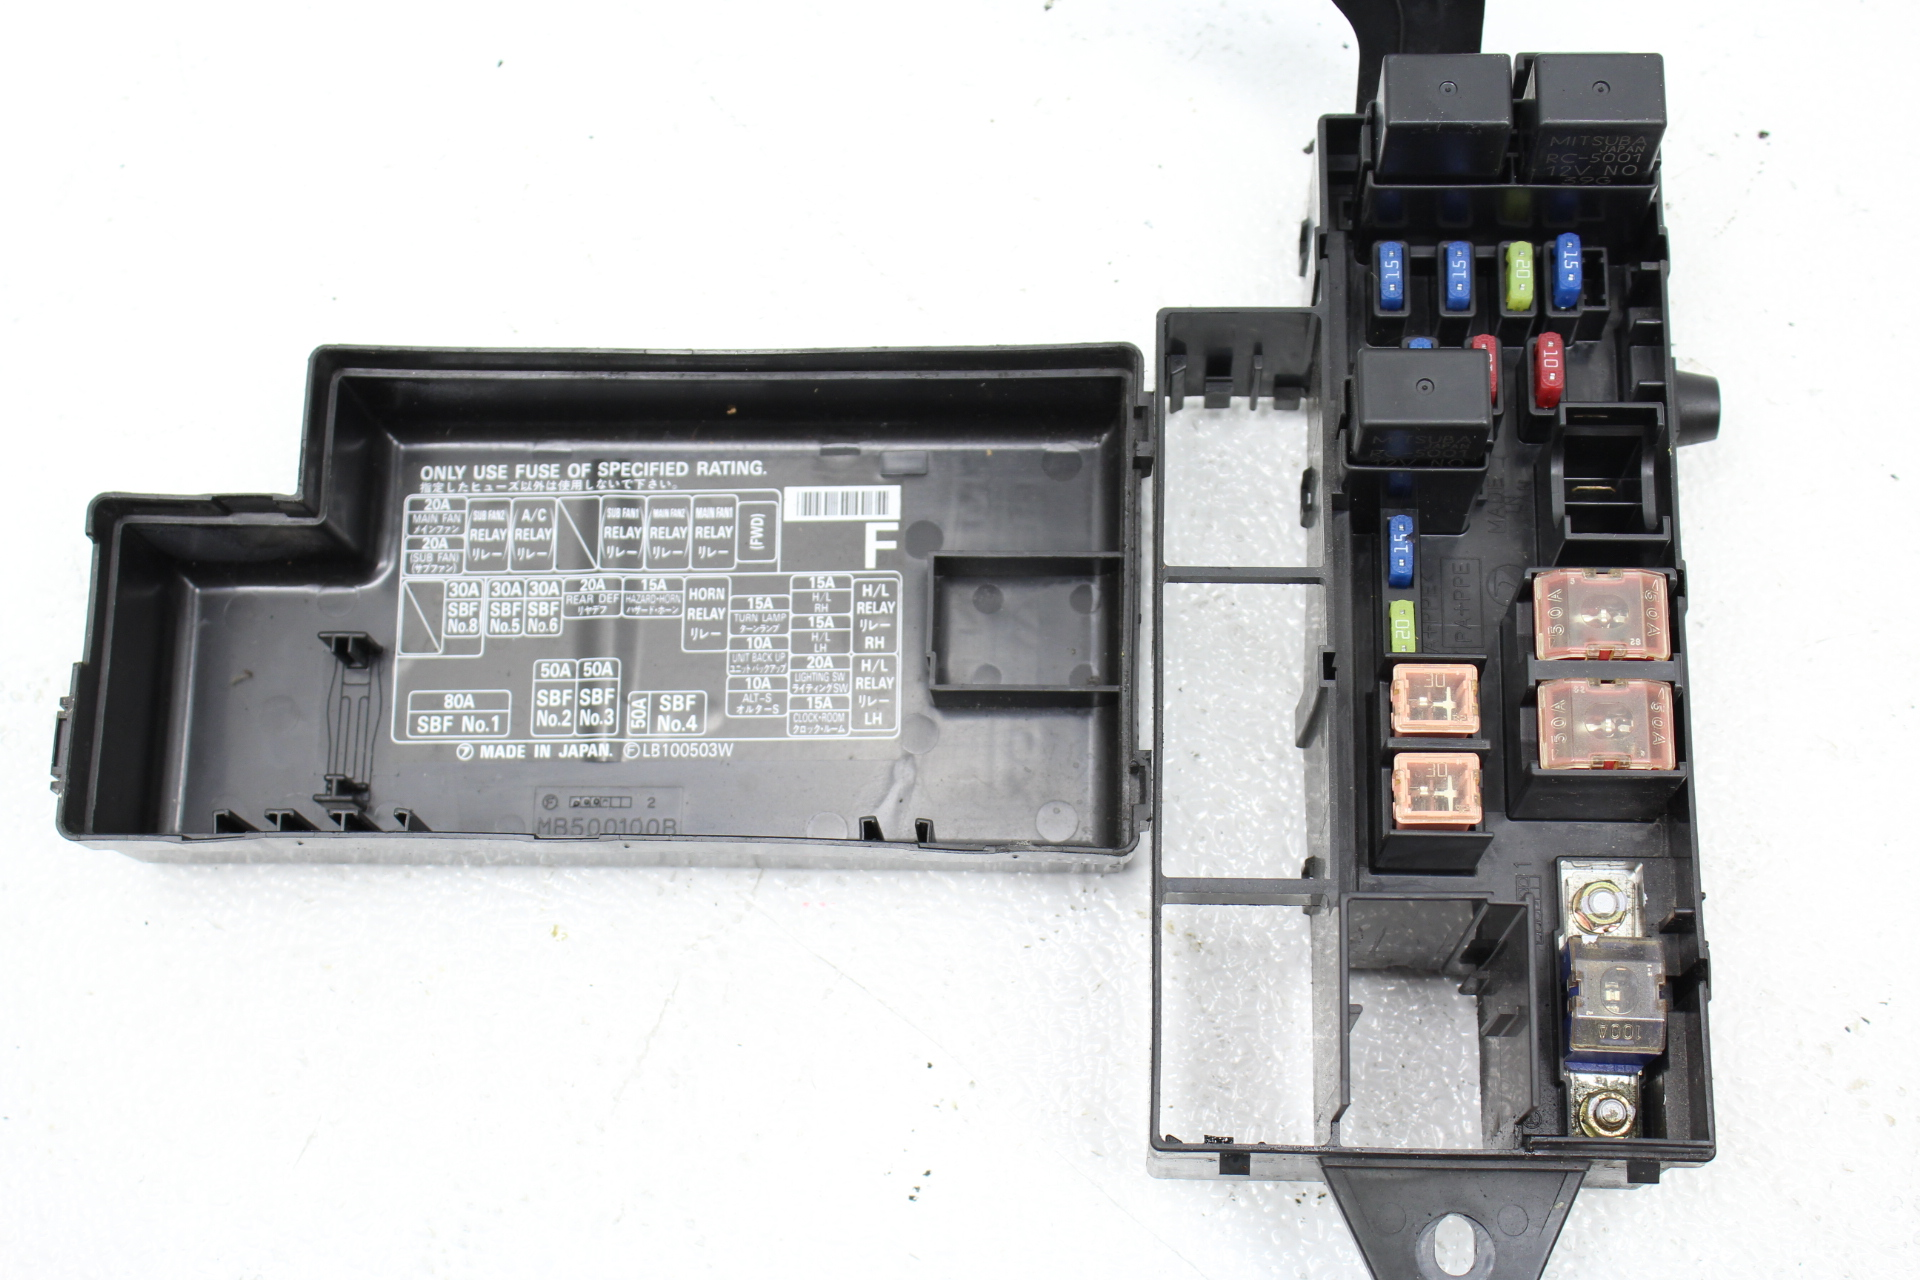 [SCHEMATICS_4UK]  2007 Subaru Impreza Fuse Box. 2007 subaru impreza fuse box locations and  fuse card youtube. 2006 2007 subaru impreza wrx sti fuse box junction  panel. 2006 2007 subaru impreza wrx sti dash | 2007 Subaru Wrx Fuse Box |  | A.2002-acura-tl-radio.info. All Rights Reserved.